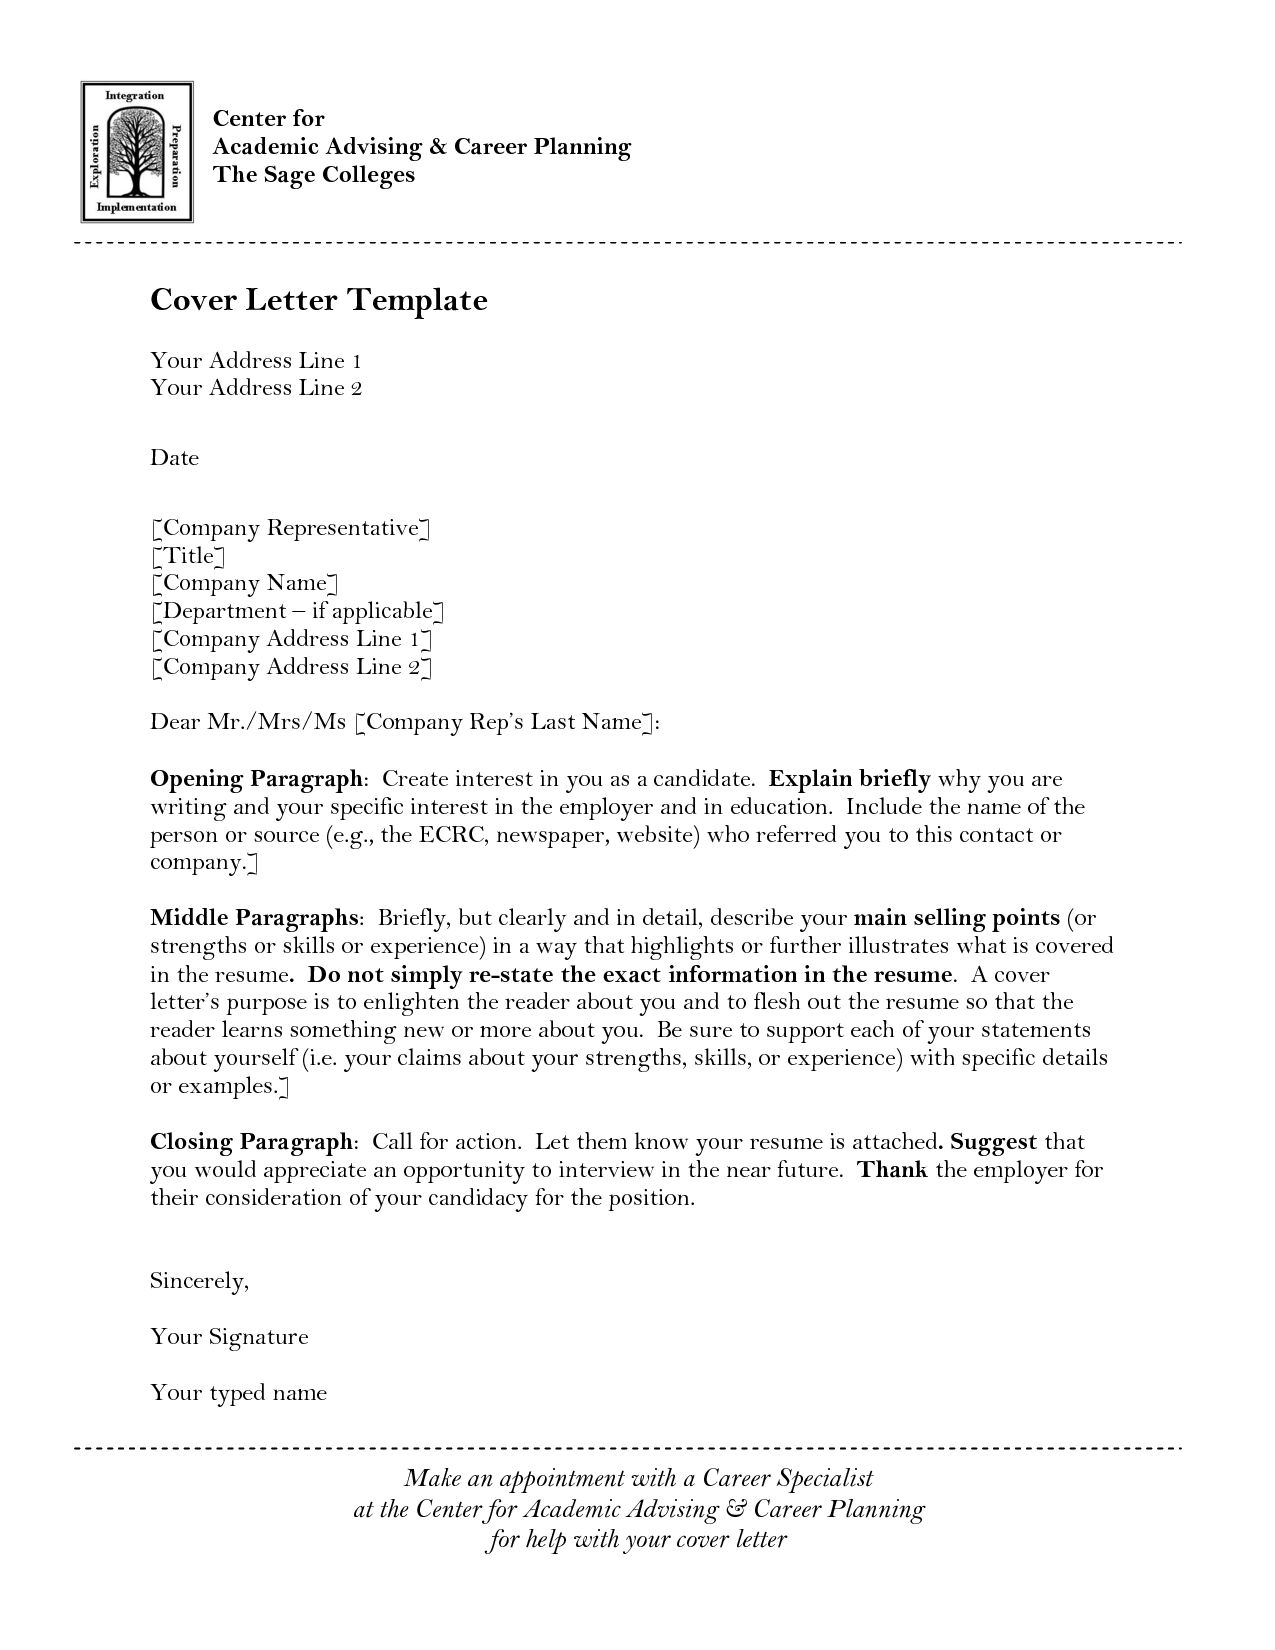 Cover Letter Template University Cover Letter Template Cover